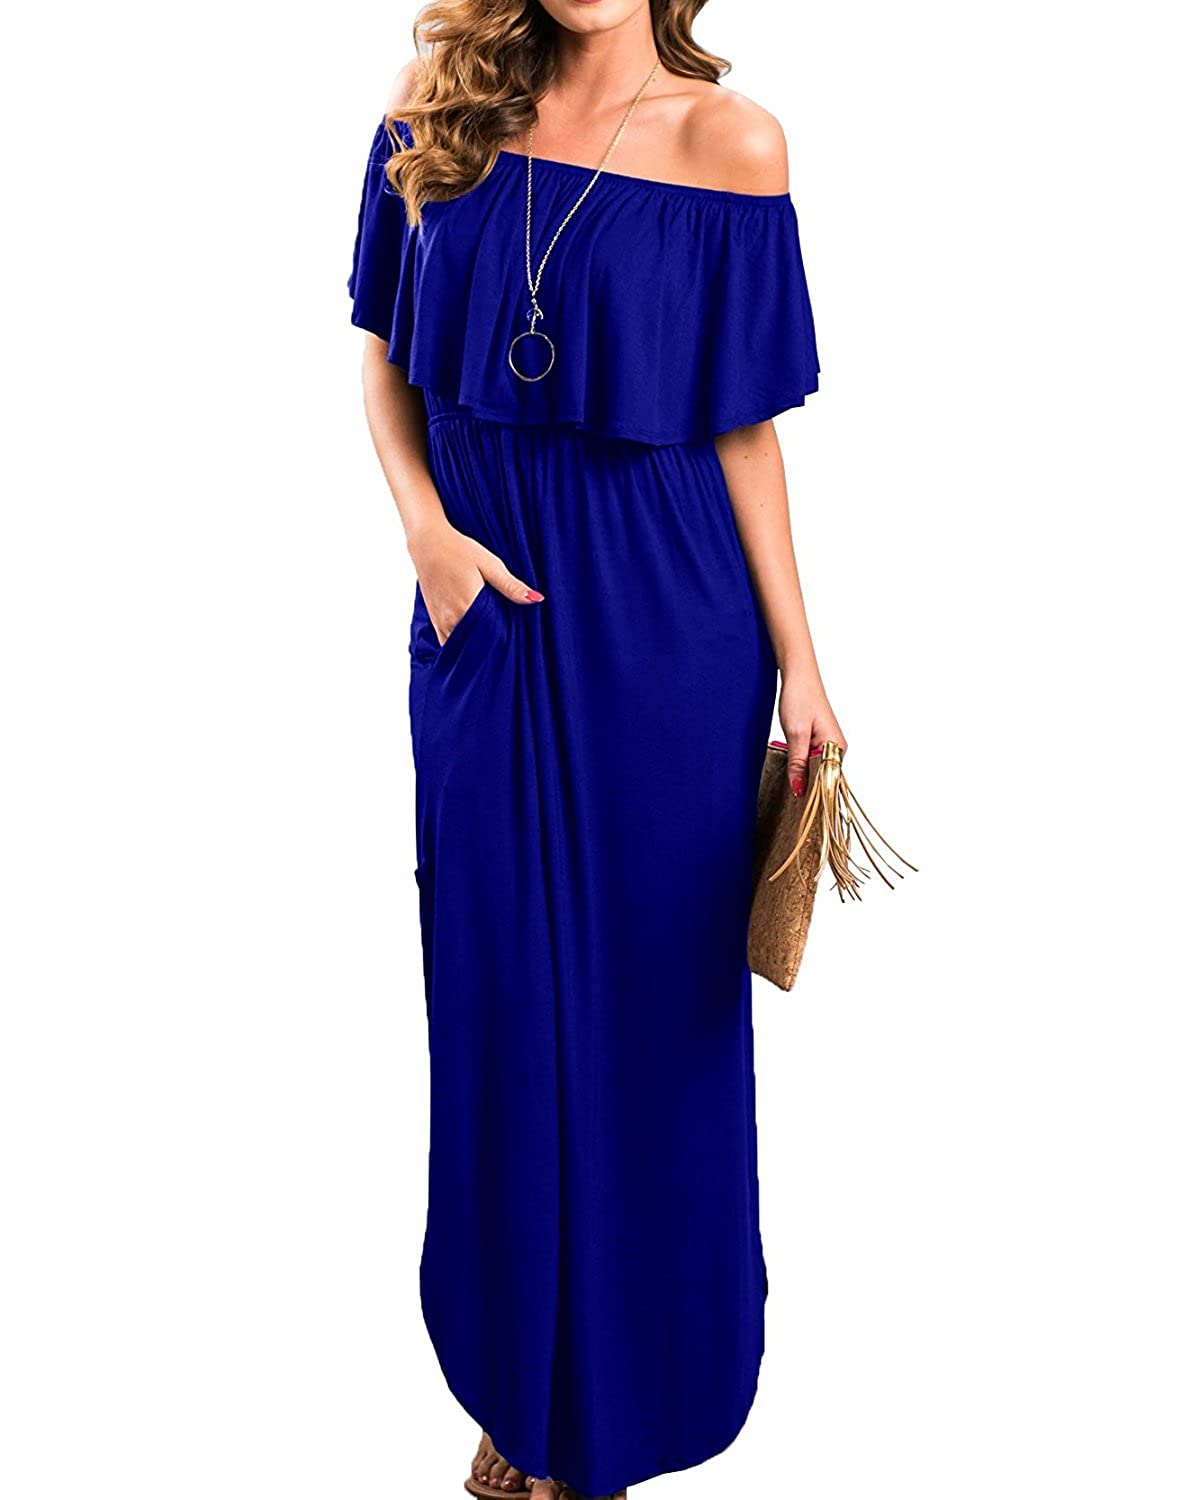 db059e6194b3 Uniboutique Womens Casual Off Shoulder Maxi Long Dress with Pockets at  Amazon Women s Clothing store